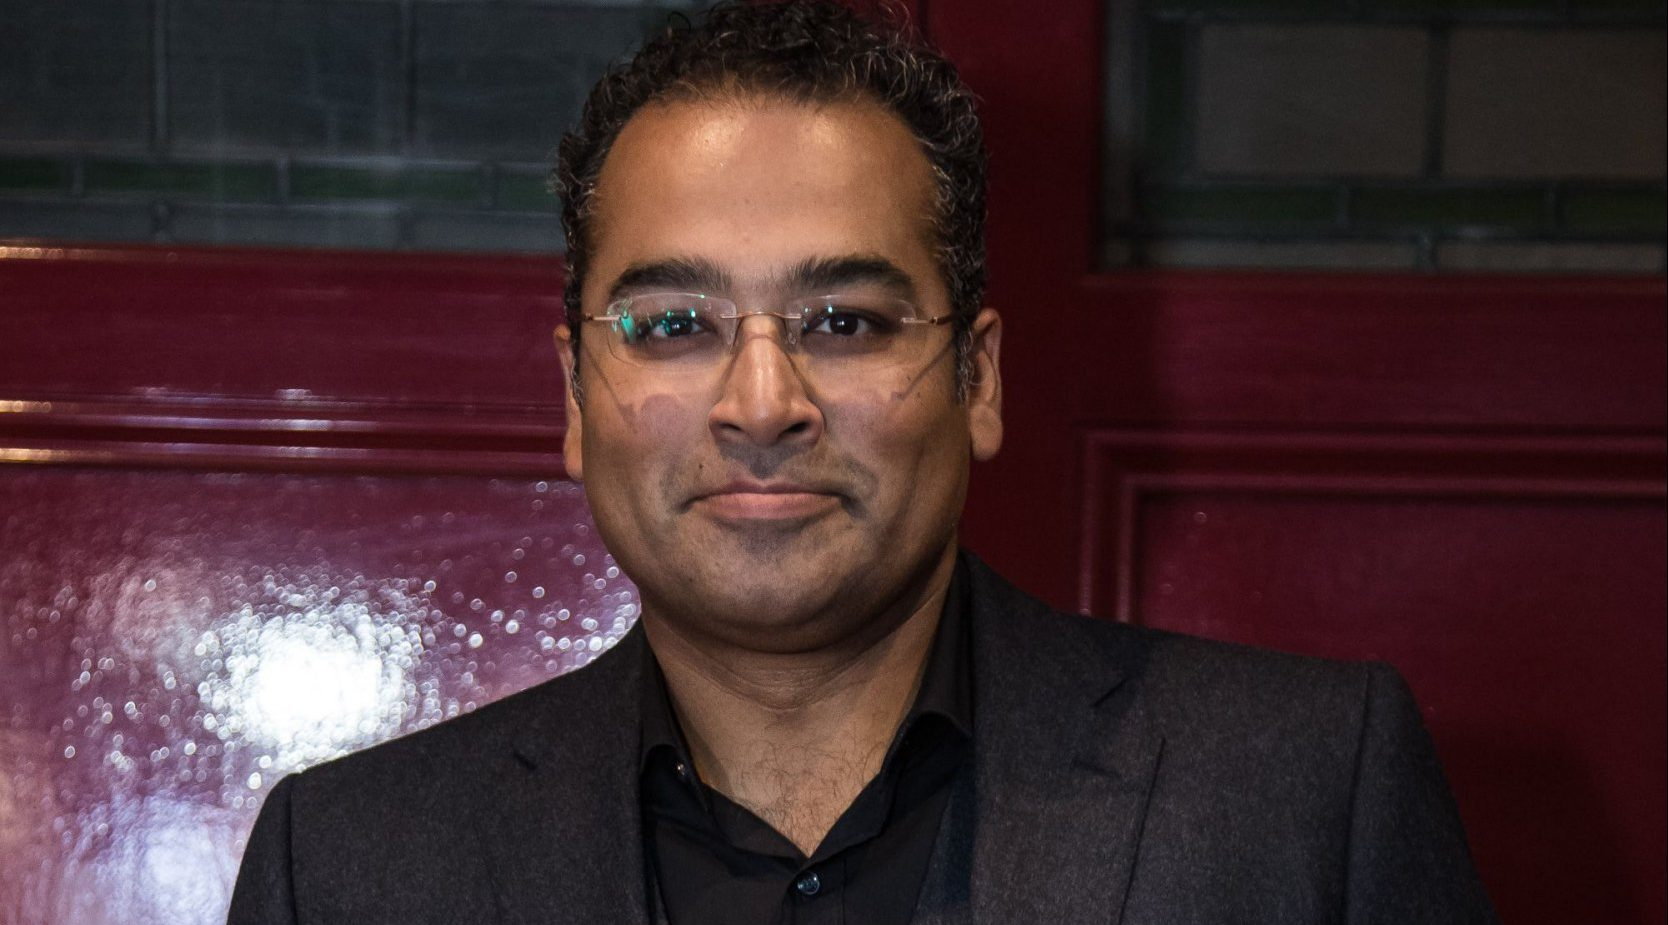 Channel 4 presenter Krishnan Guru-Murthy's career as he competes in Celebrity Bake Off